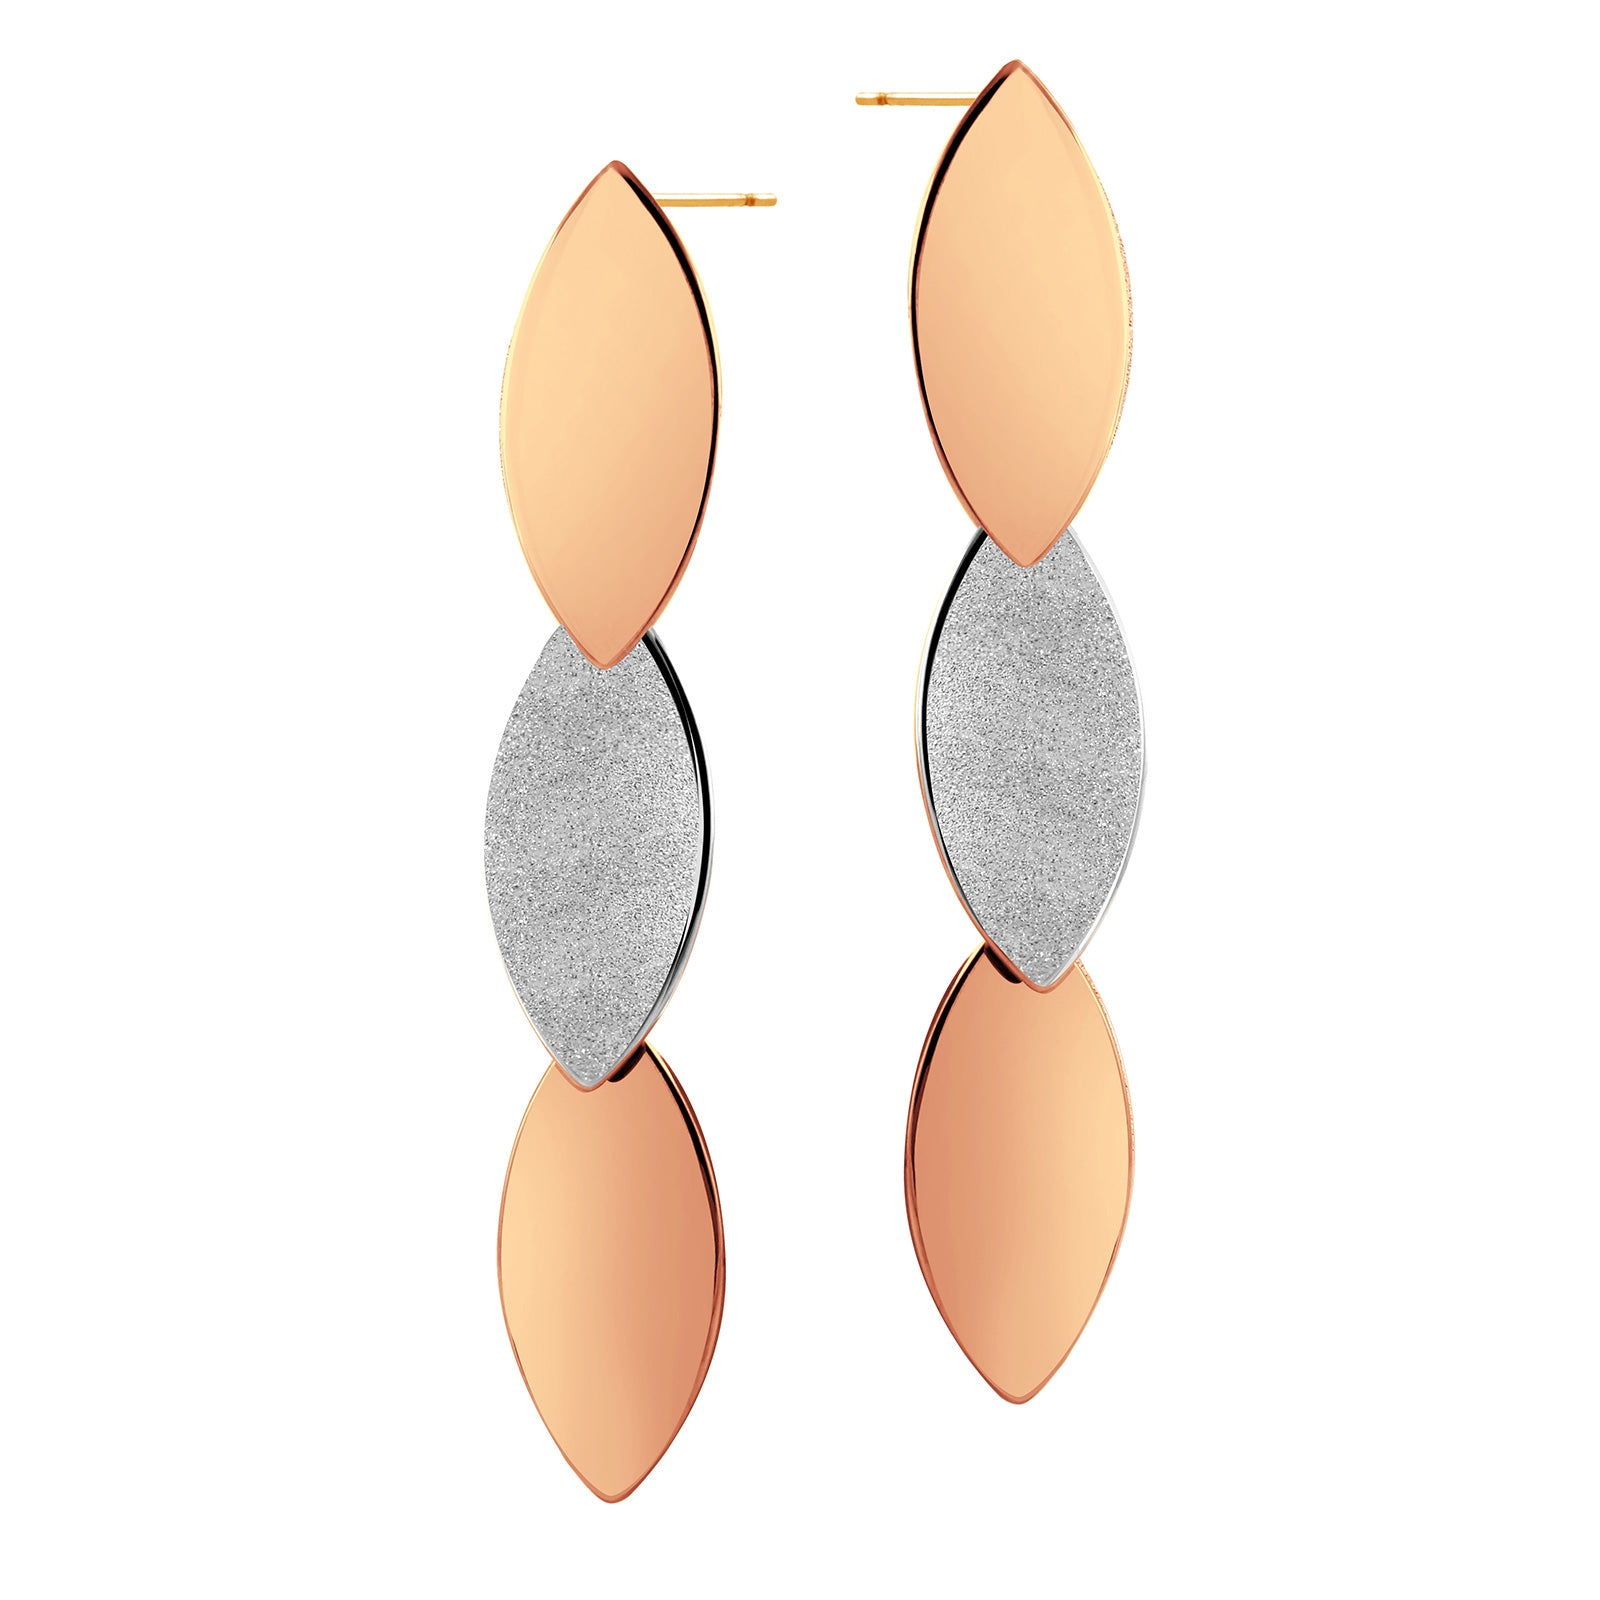 MNC-ER120-C5 Steel & Rose Gold Dangling Earrings